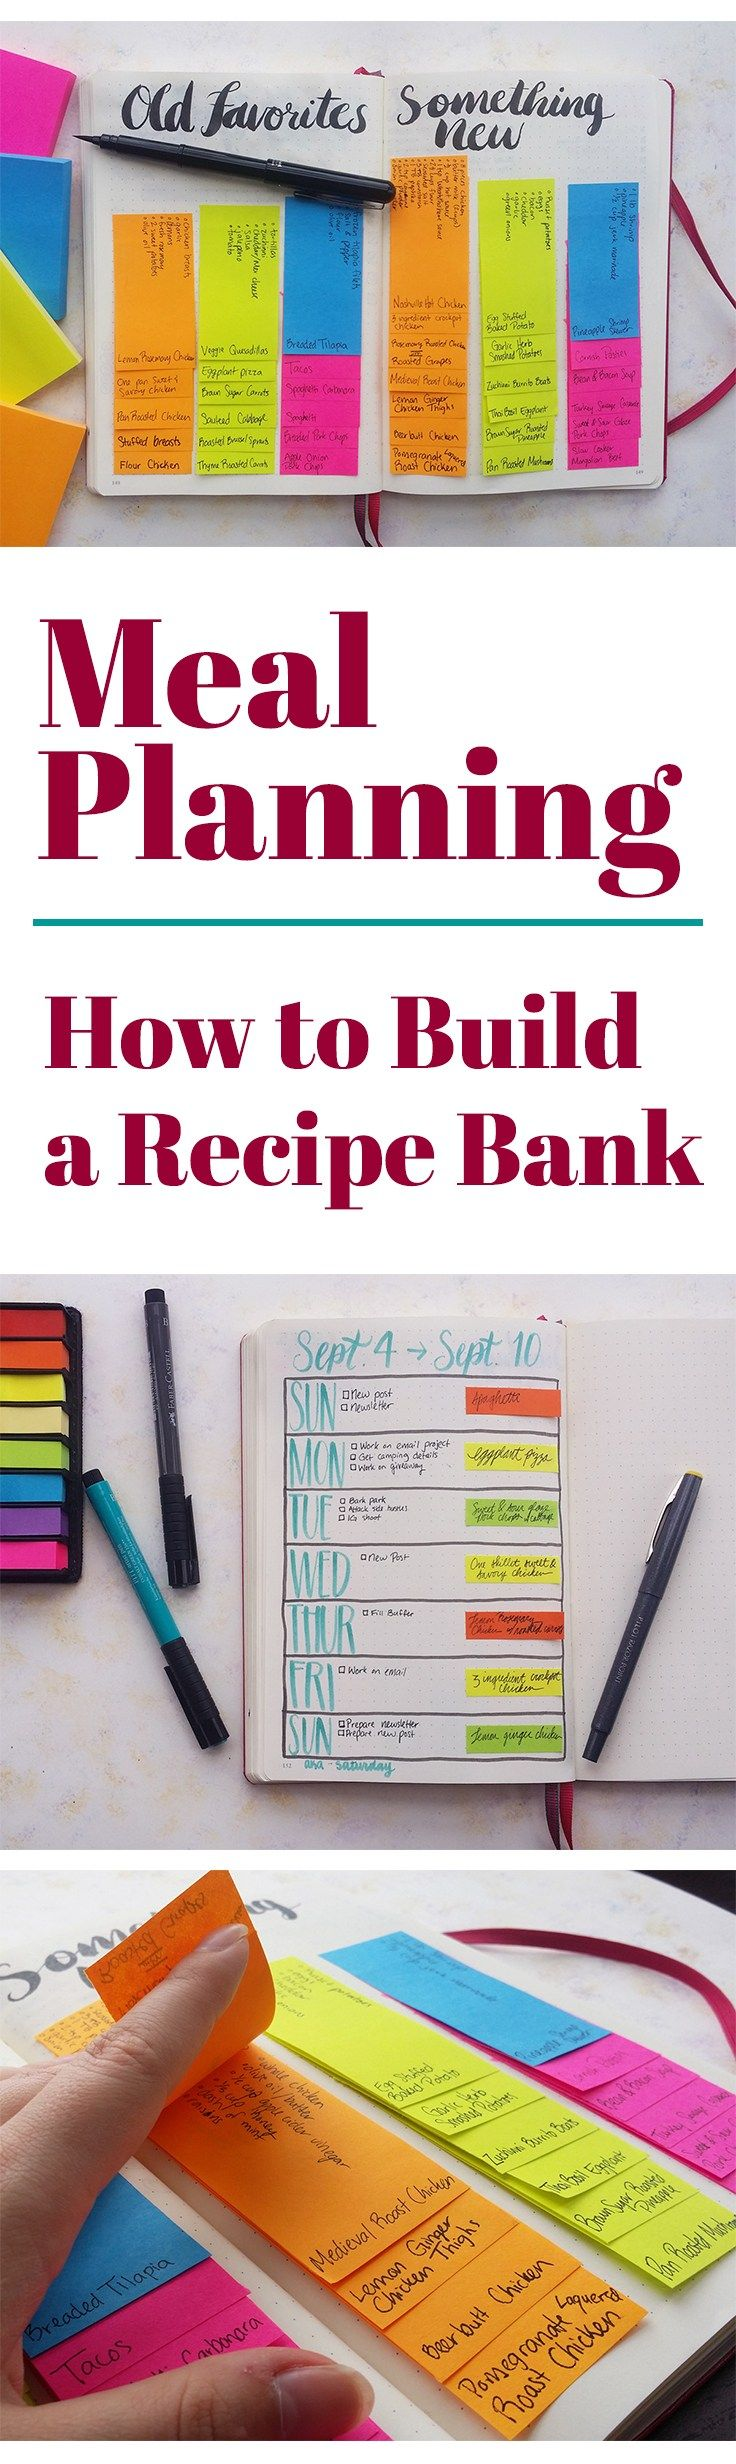 Recipe Bank! Meal Planning is an excellent way to save money, eat healthier, and have stress-free meals every night. My way of dealing with getting stuck in a rut with the same handful of meals is to create a recipe bank in my bullet journal. See how this one easy trick makes it much easier to keep your meals interesting and keep you trying new things every week!